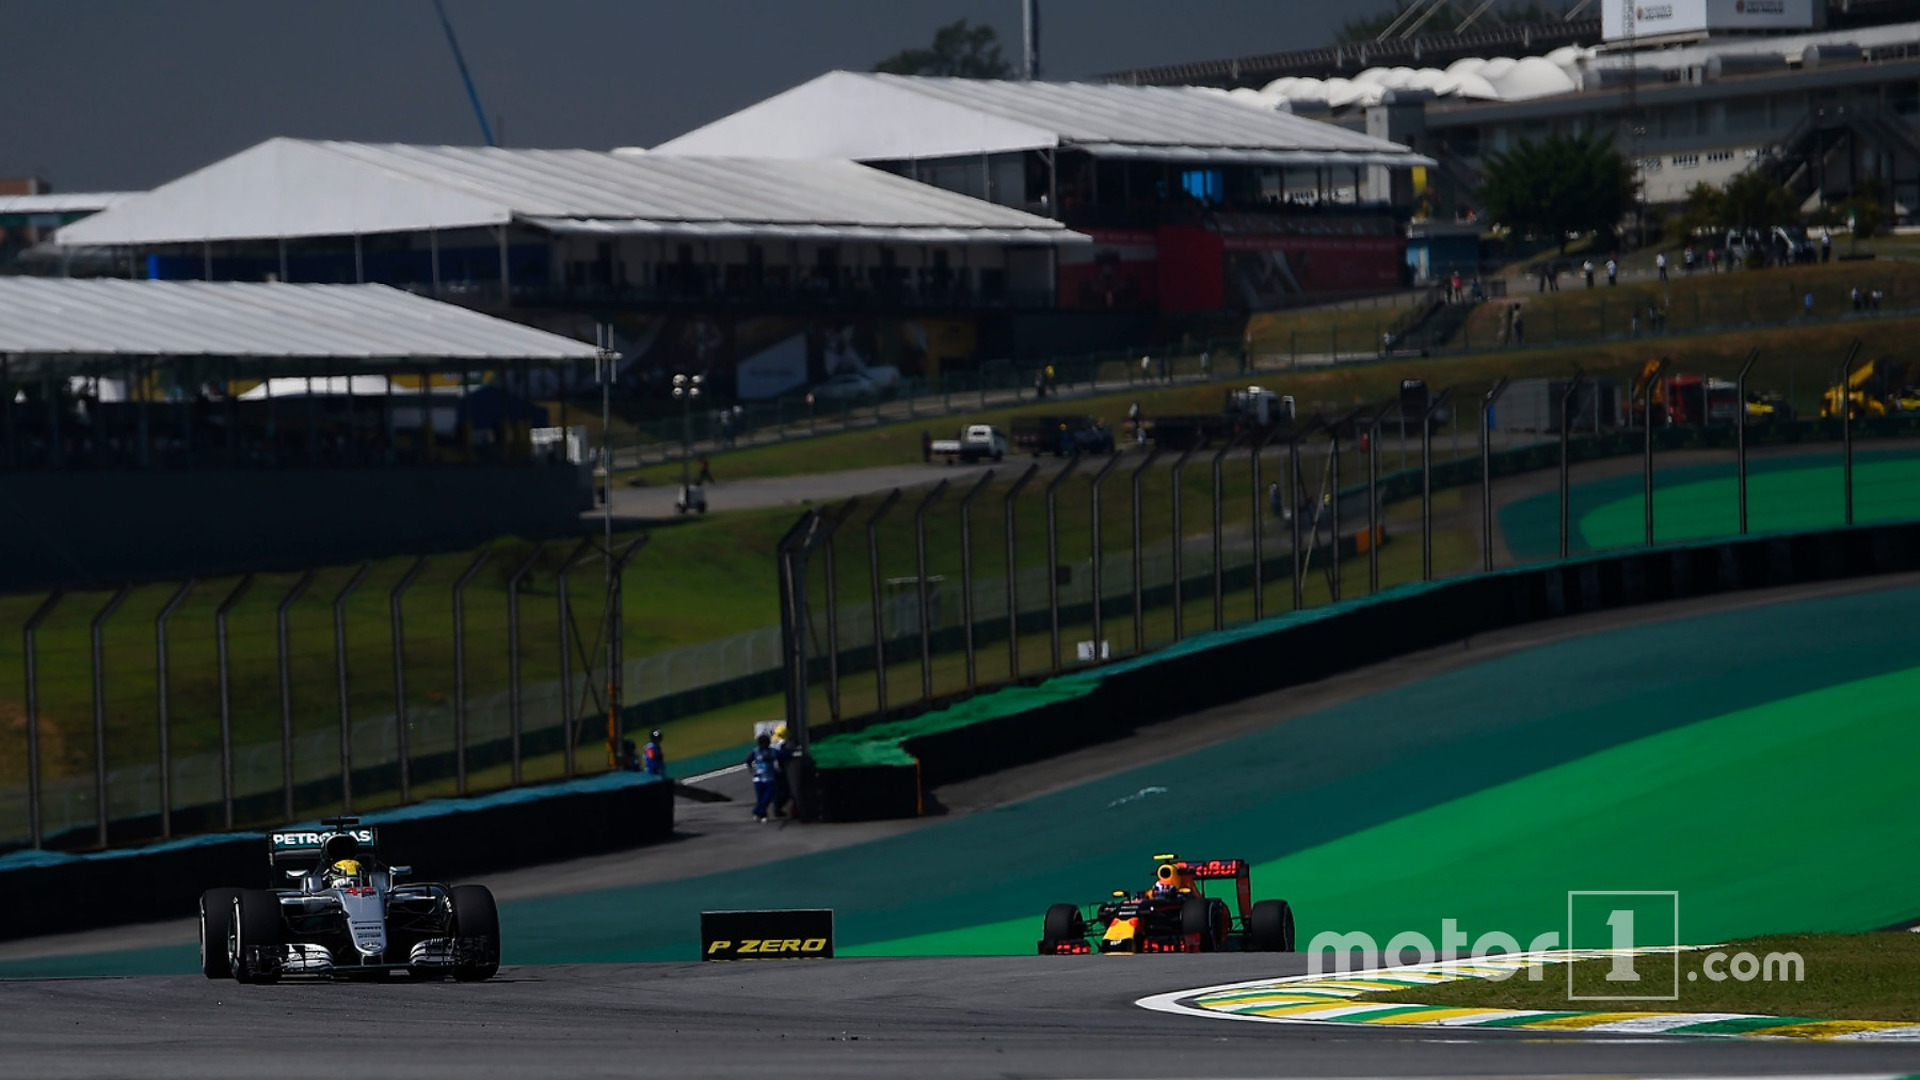 F1 Brazilian Grand Prix – Qualifying Results